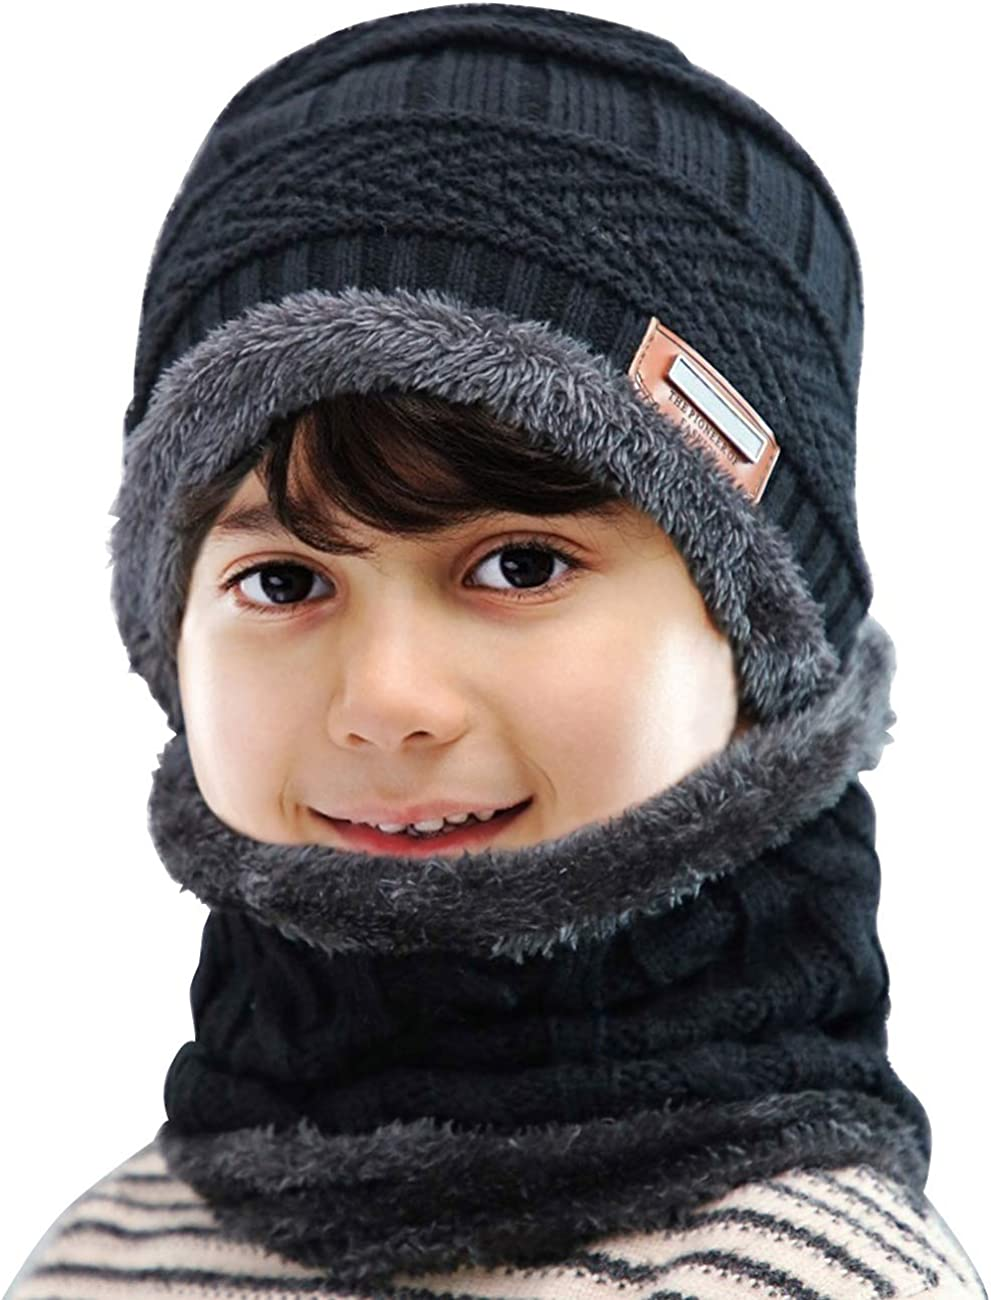 Youth size winter soft Stretchy cap with matching scarf